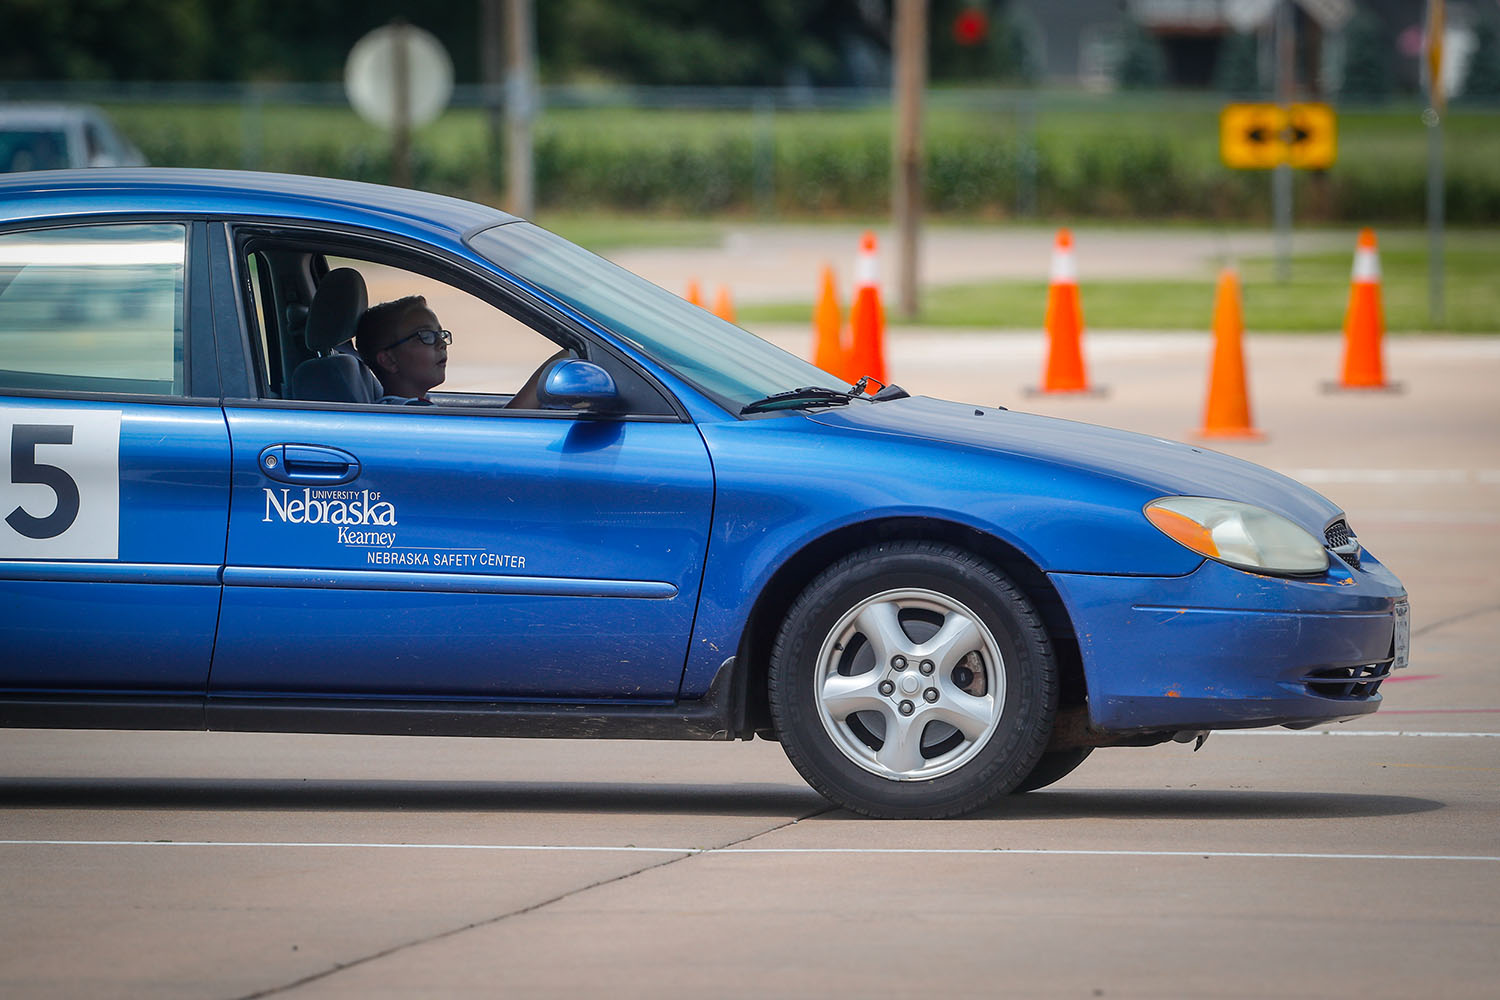 The Nebraska Safety Center is now offering driver education through an online format, allowing teens to participate in the program during the coronavirus pandemic. The program features online curriculum, followed by behind-the-wheel driving with a certified instructor. (Photos by Corbey R. Dorsey, UNK Communications)